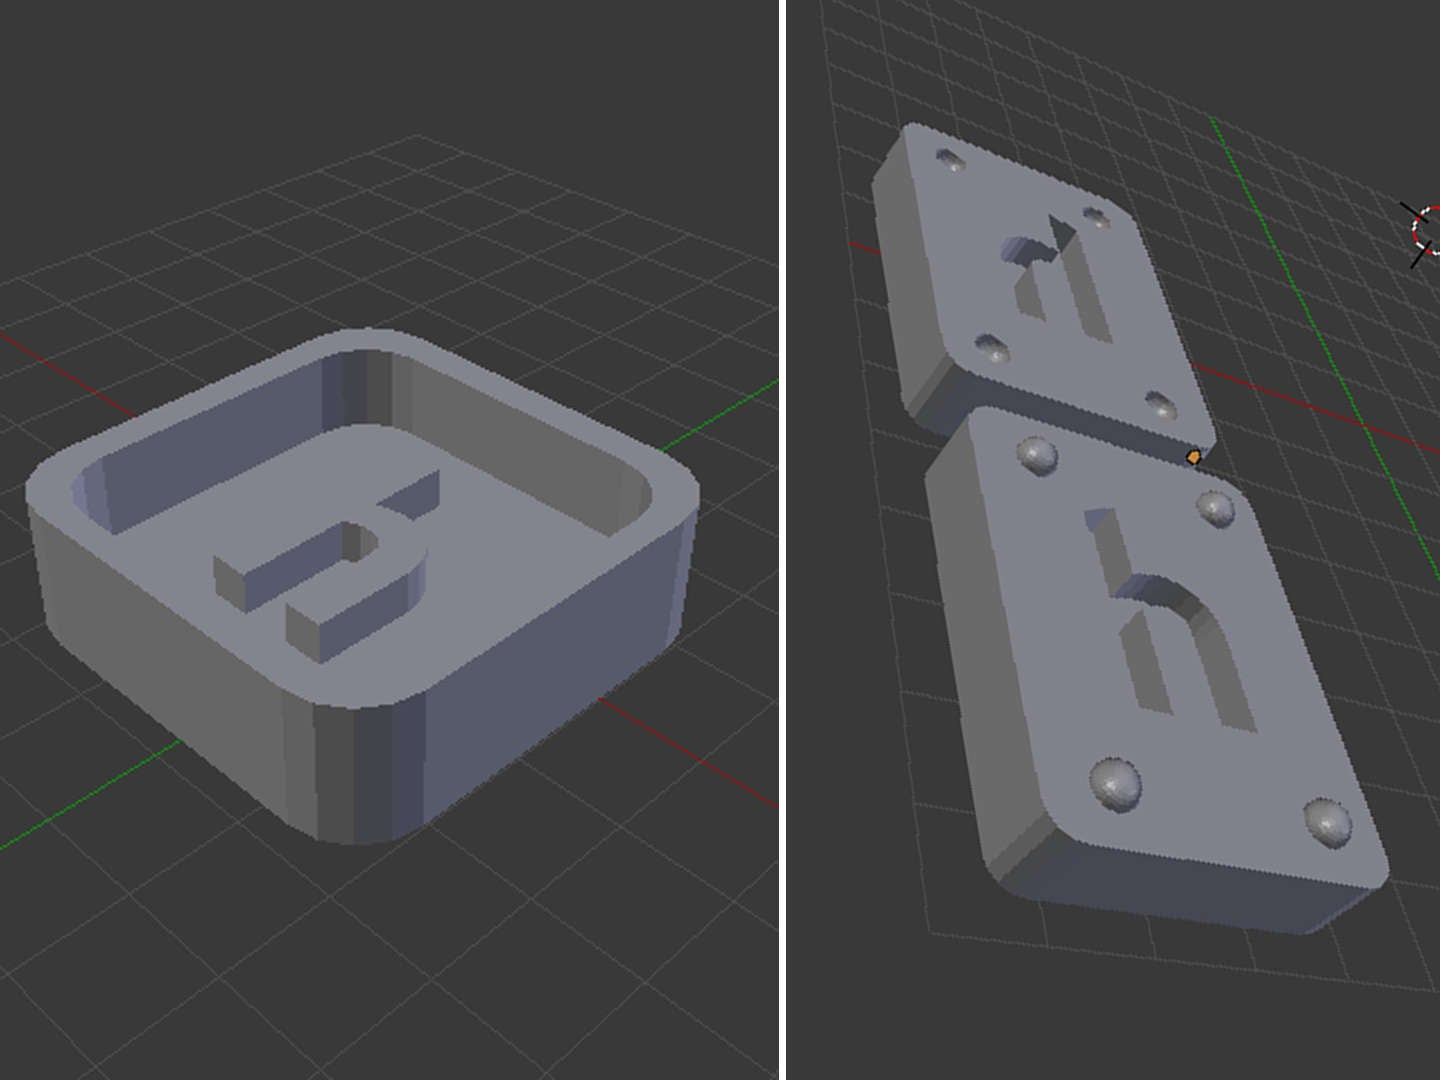 Create a mold from the design